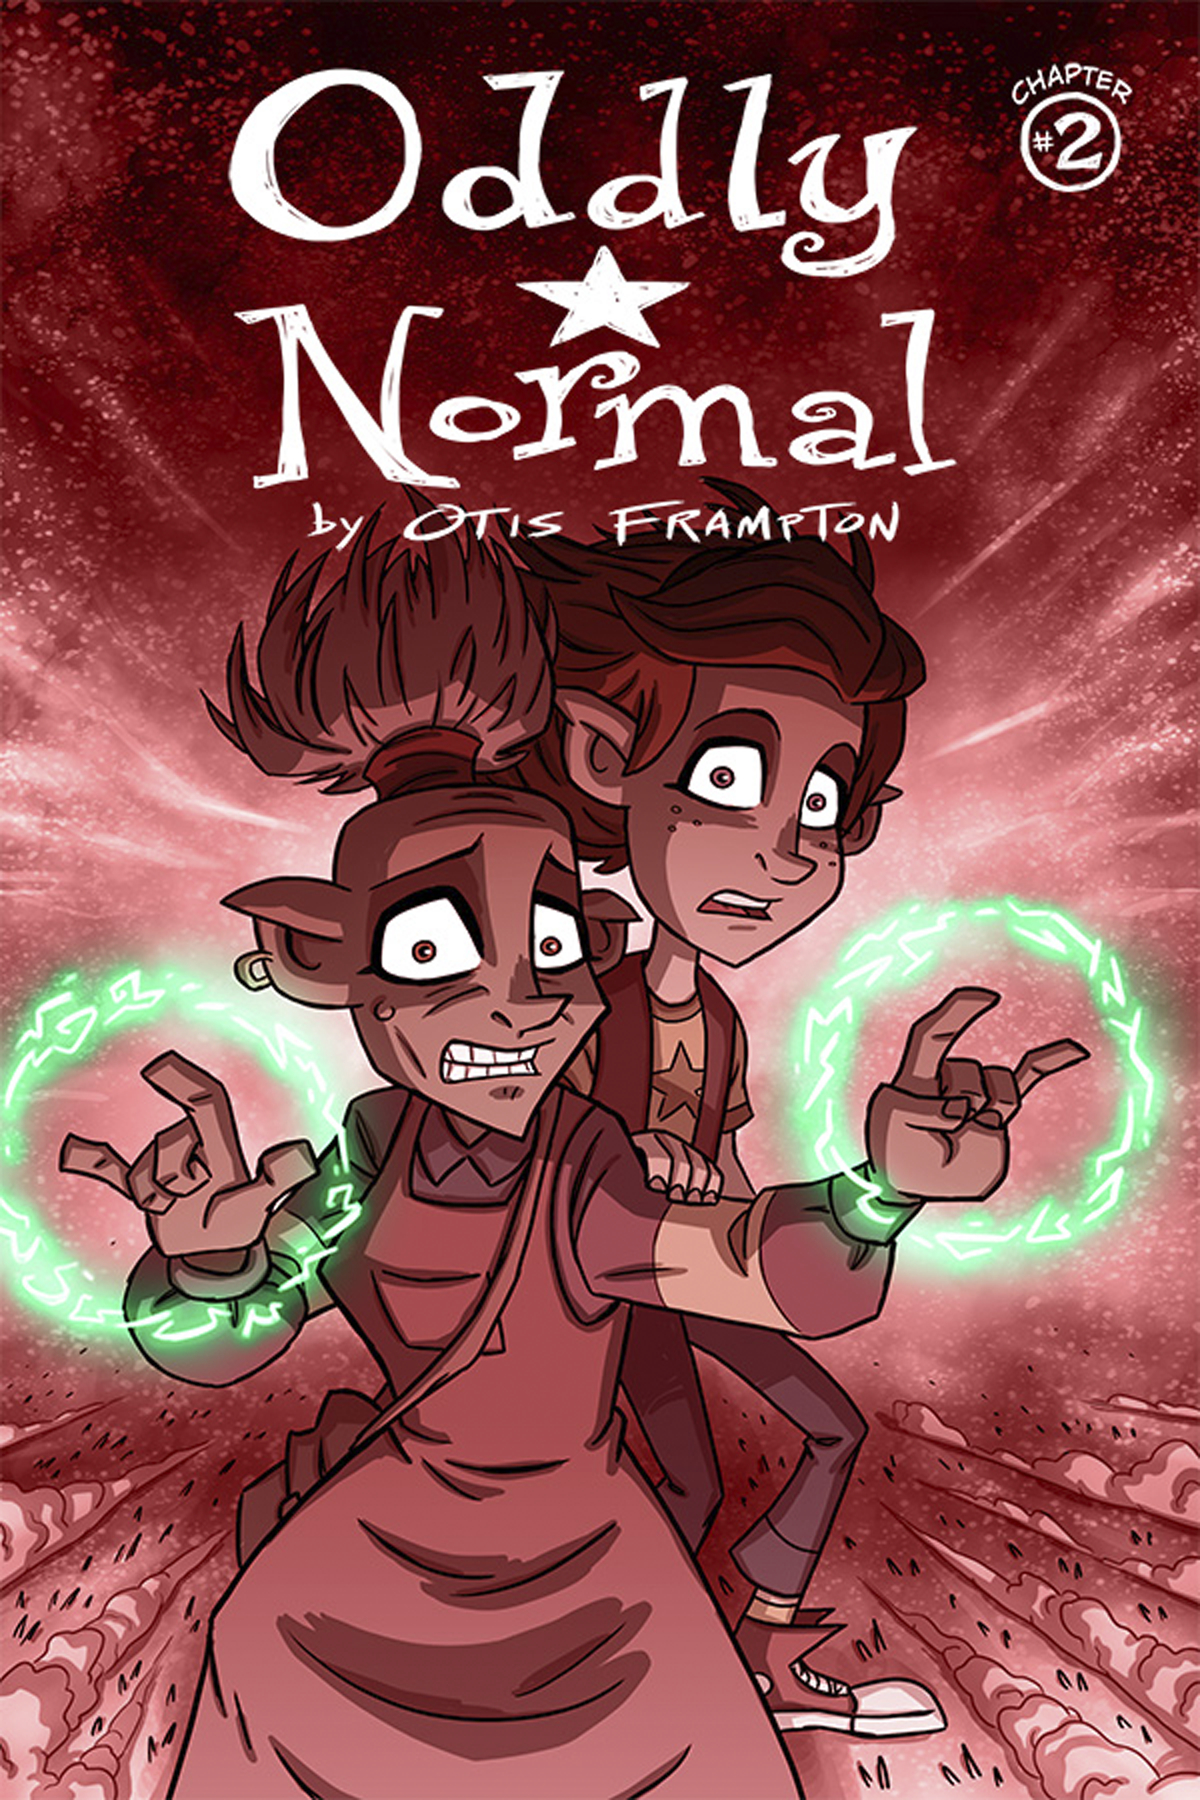 ODDLY NORMAL #2 CVR A FRAMPTON